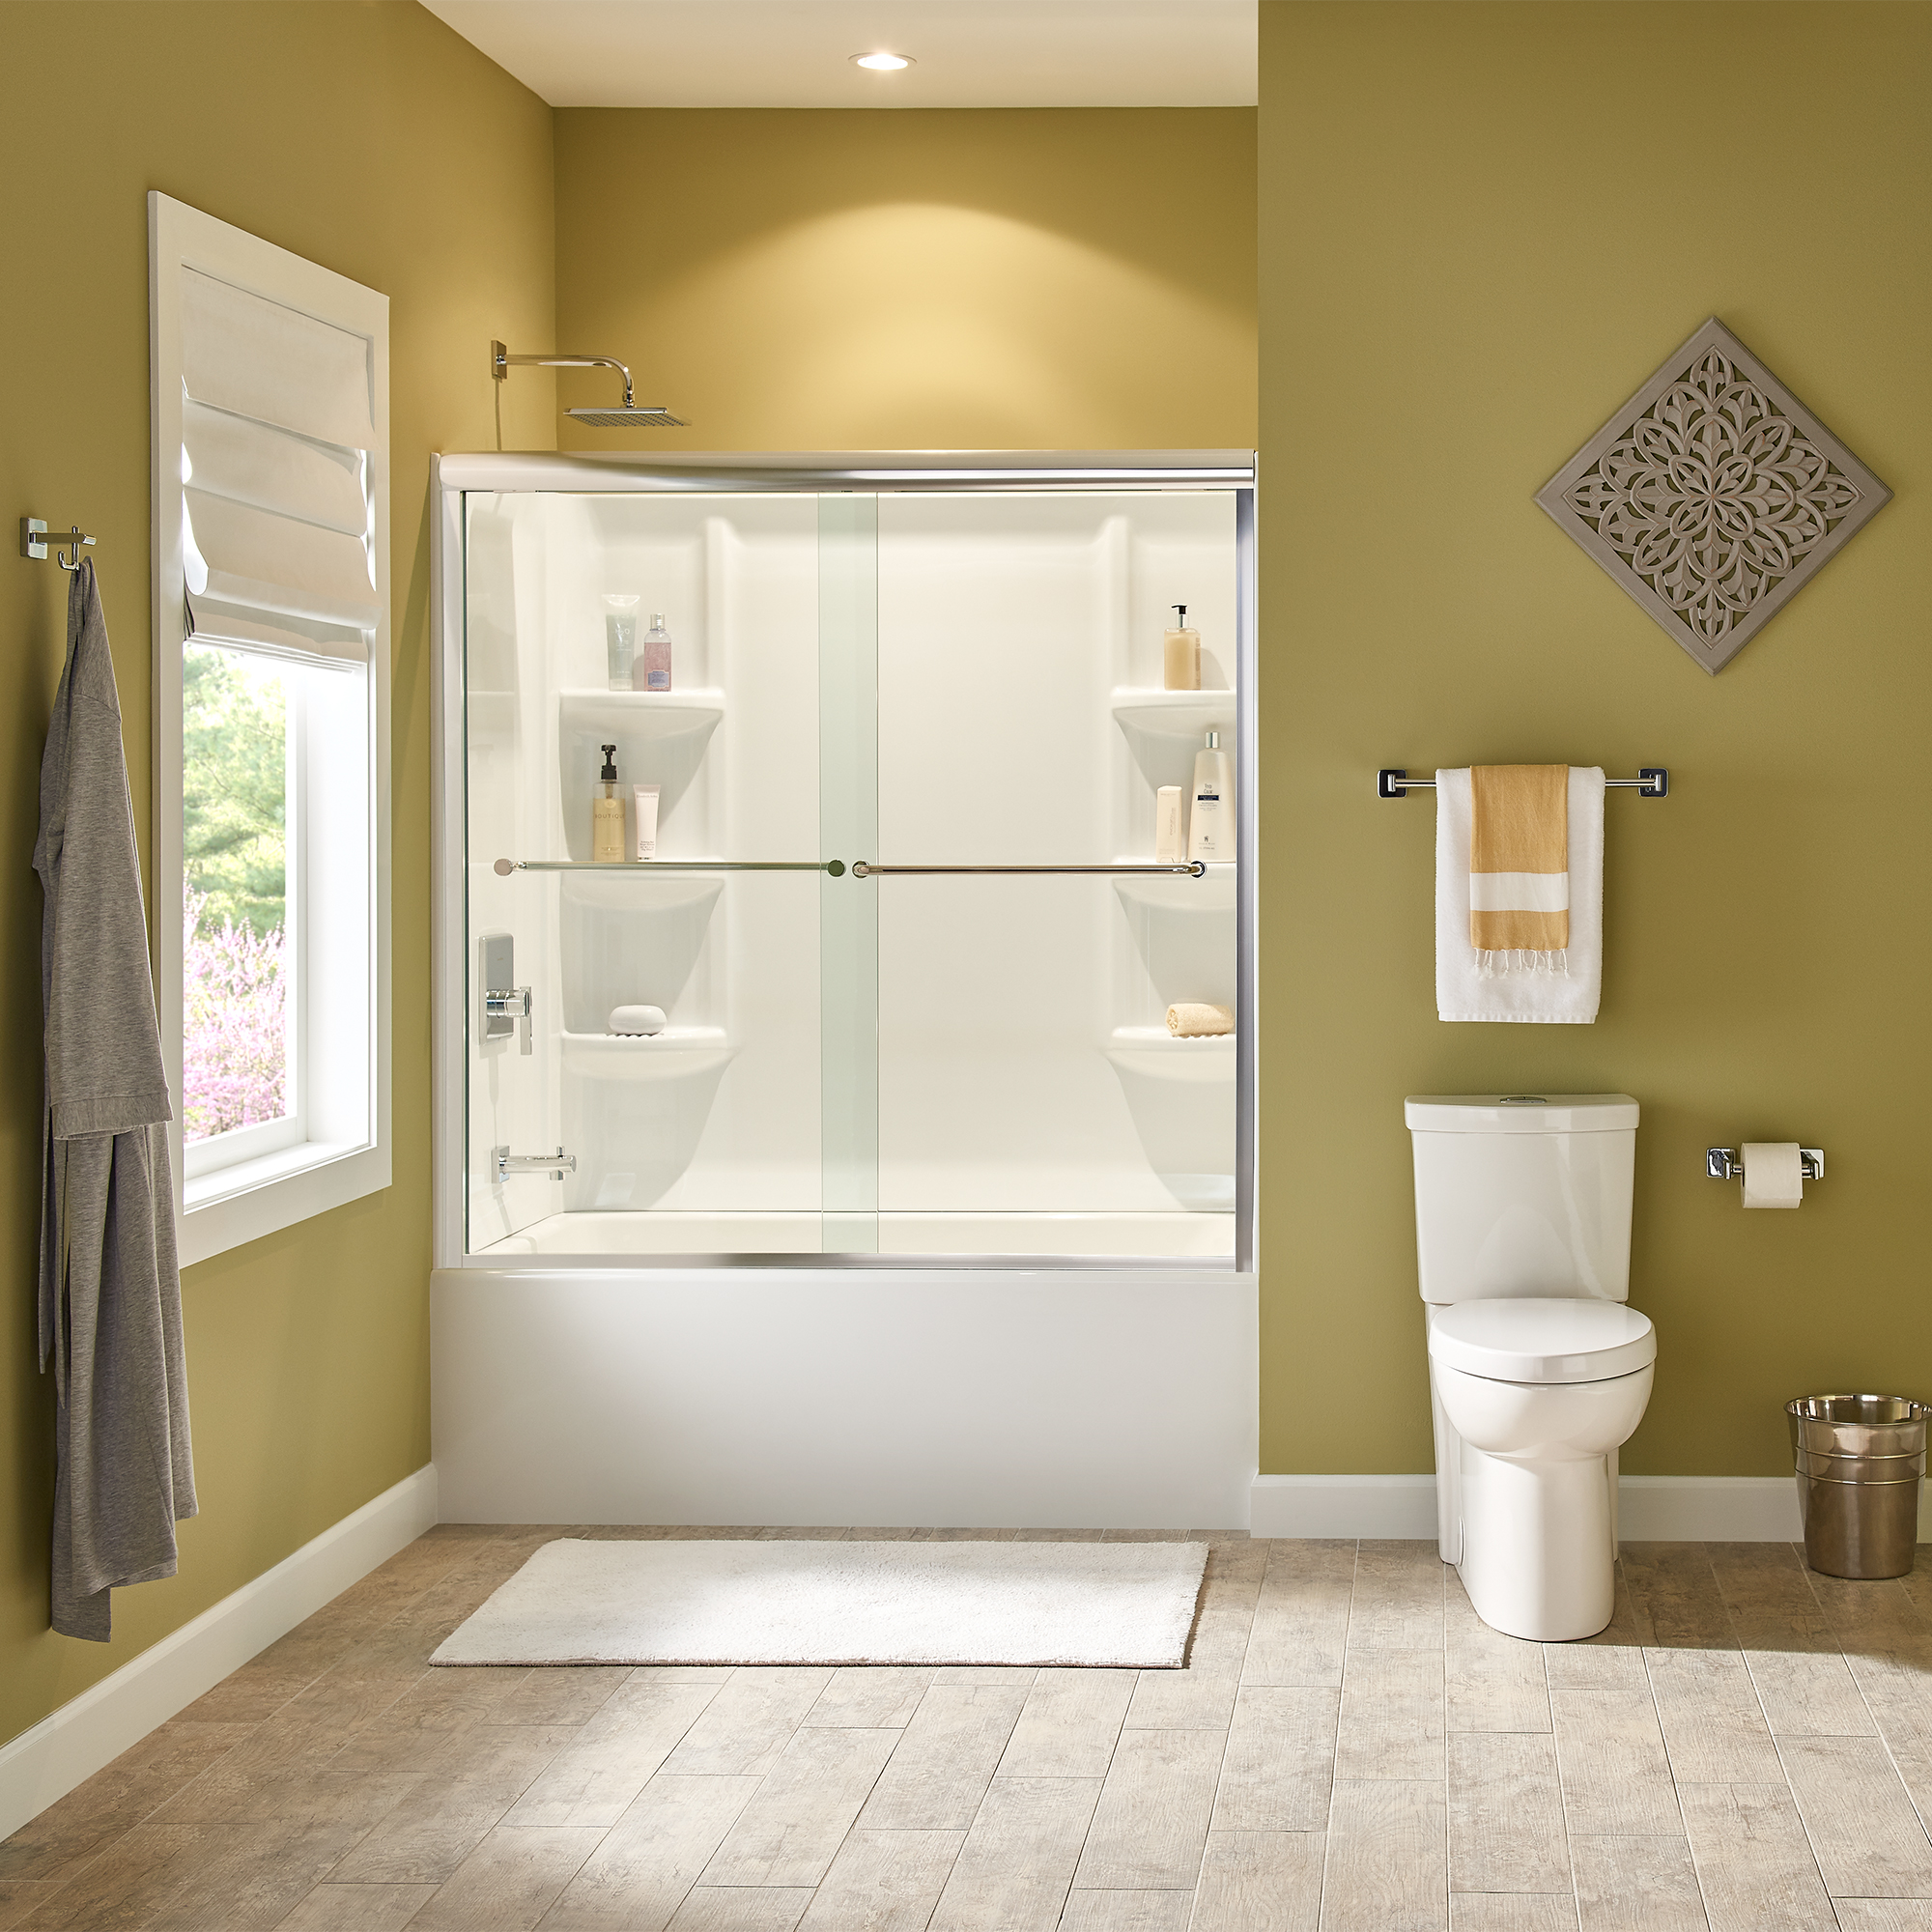 Why You Ought to Improve Your Bathroom Seat? four Causes